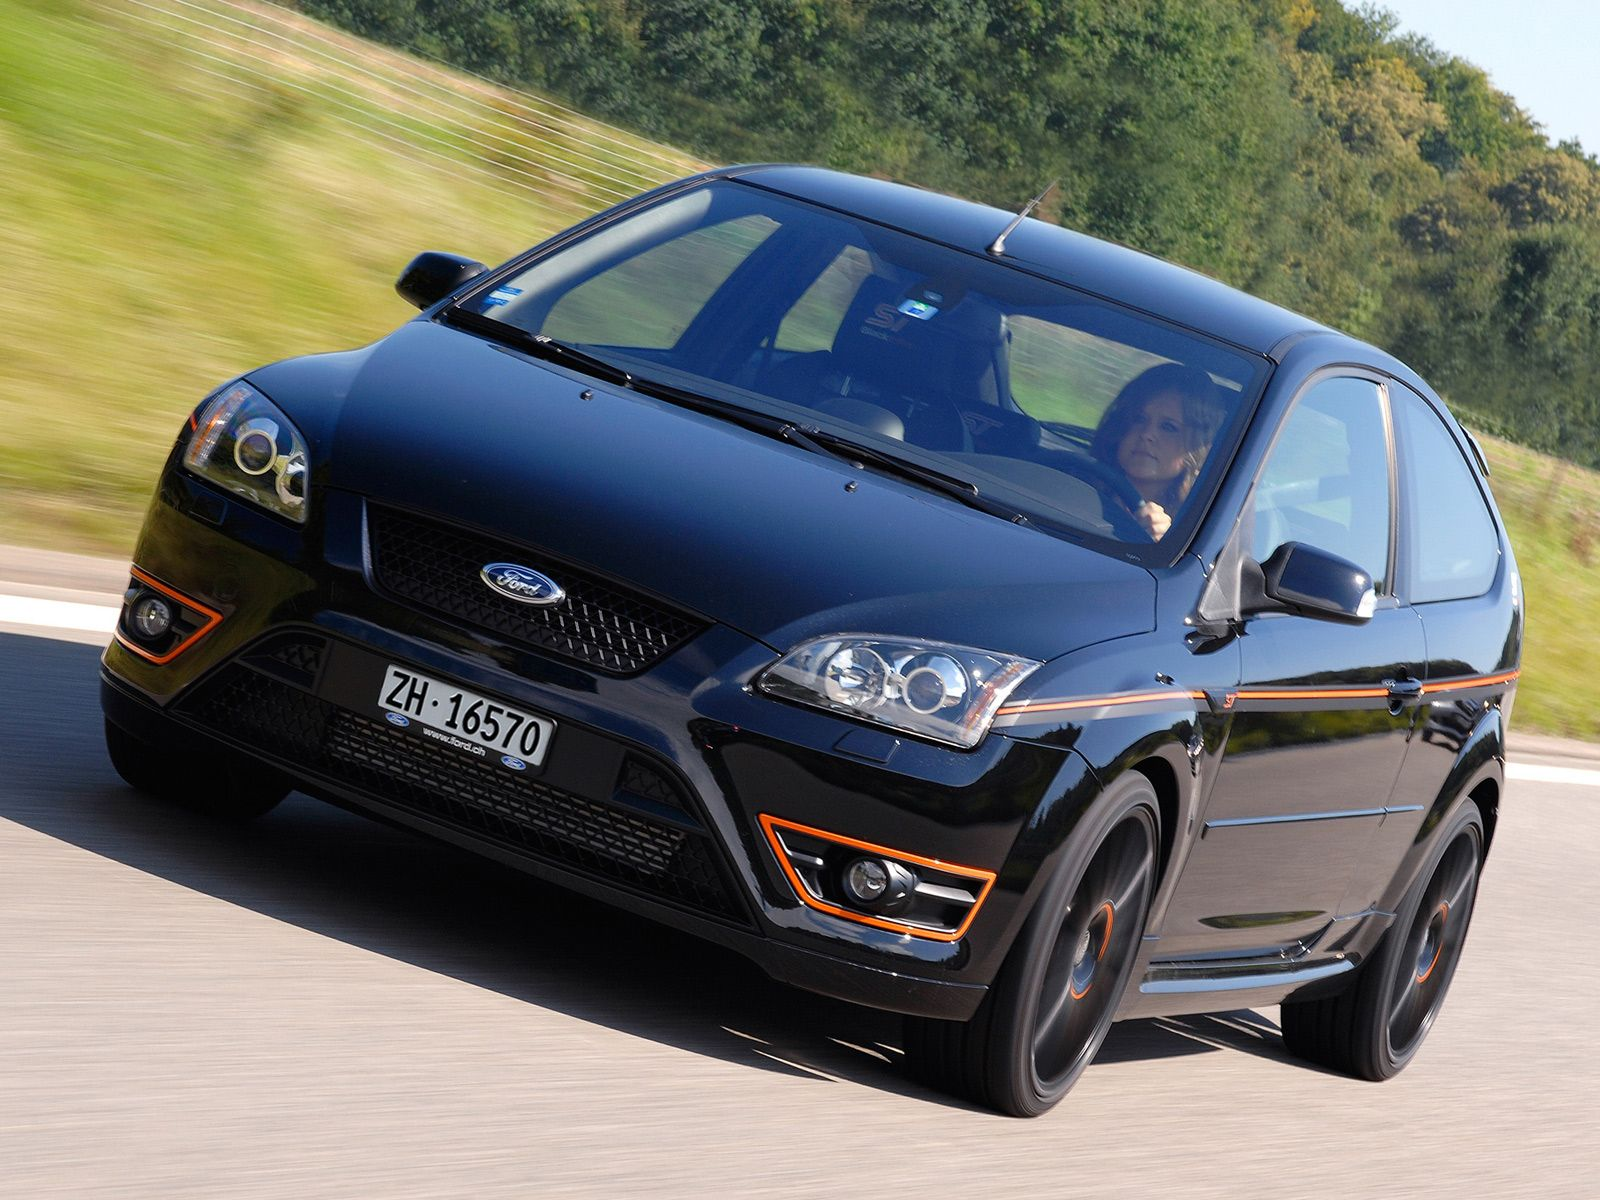 Ford Focus St 3 Door Black Edition 2007 Ford Focus St Ford